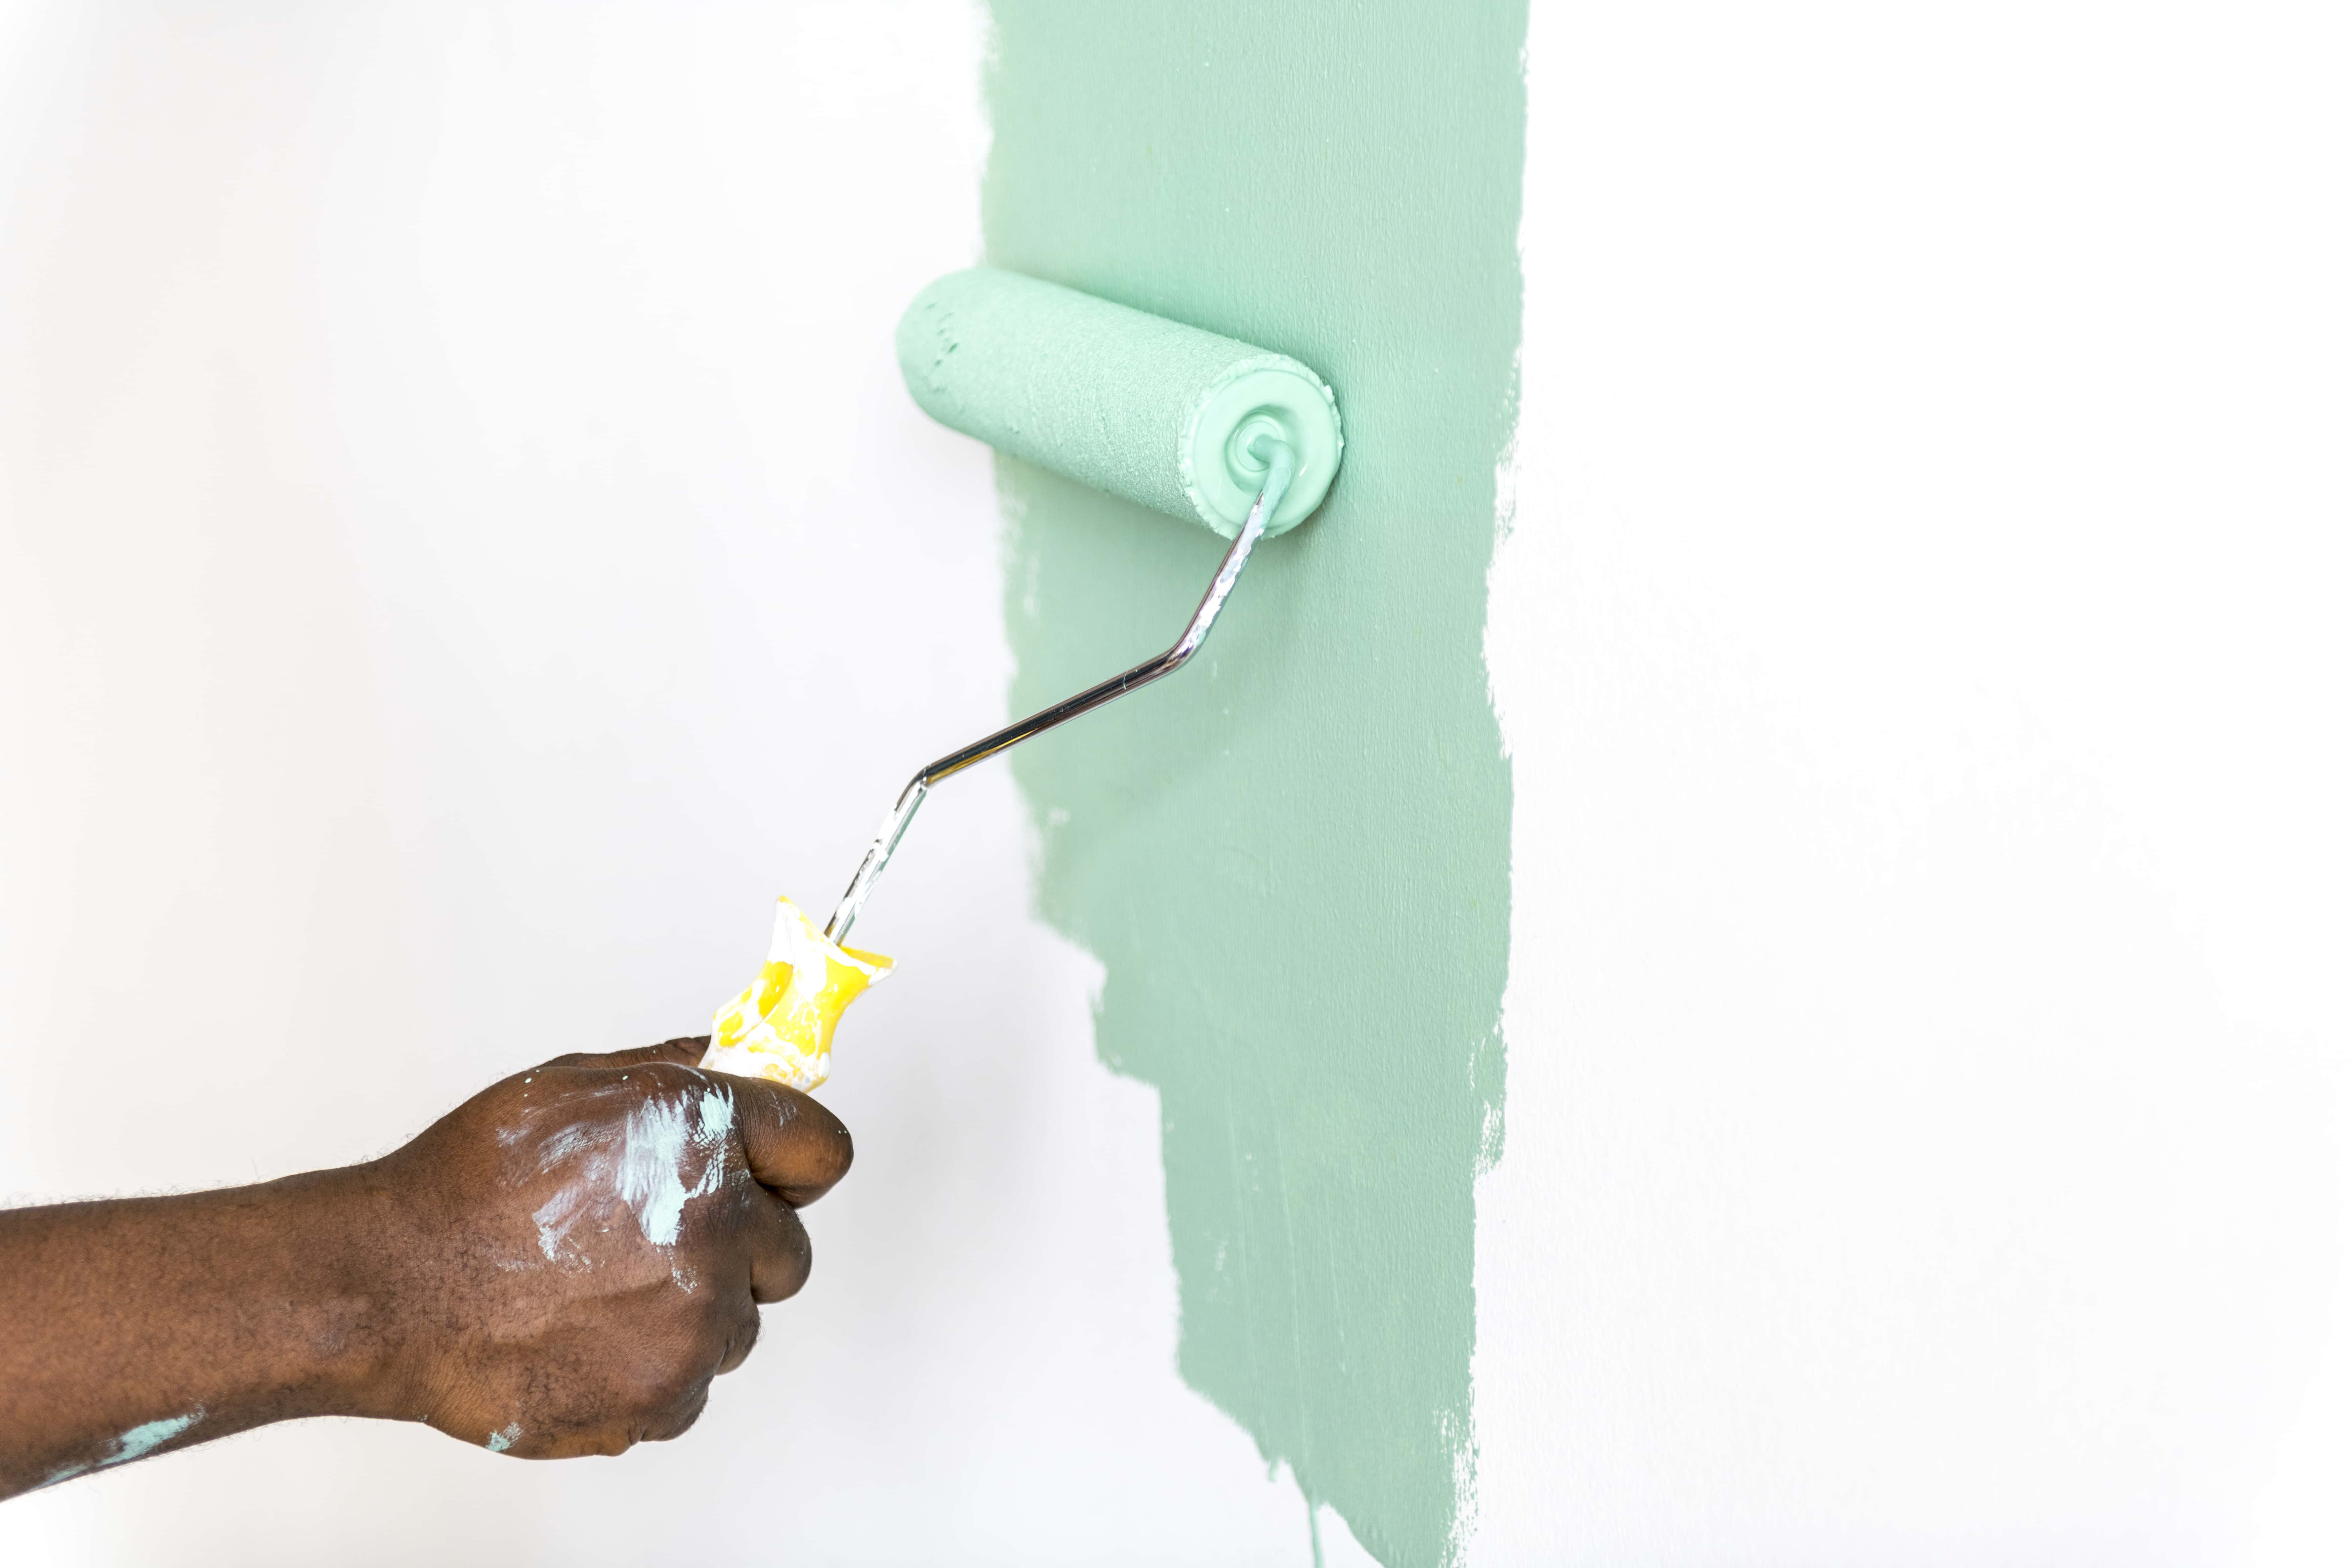 People painting house wall